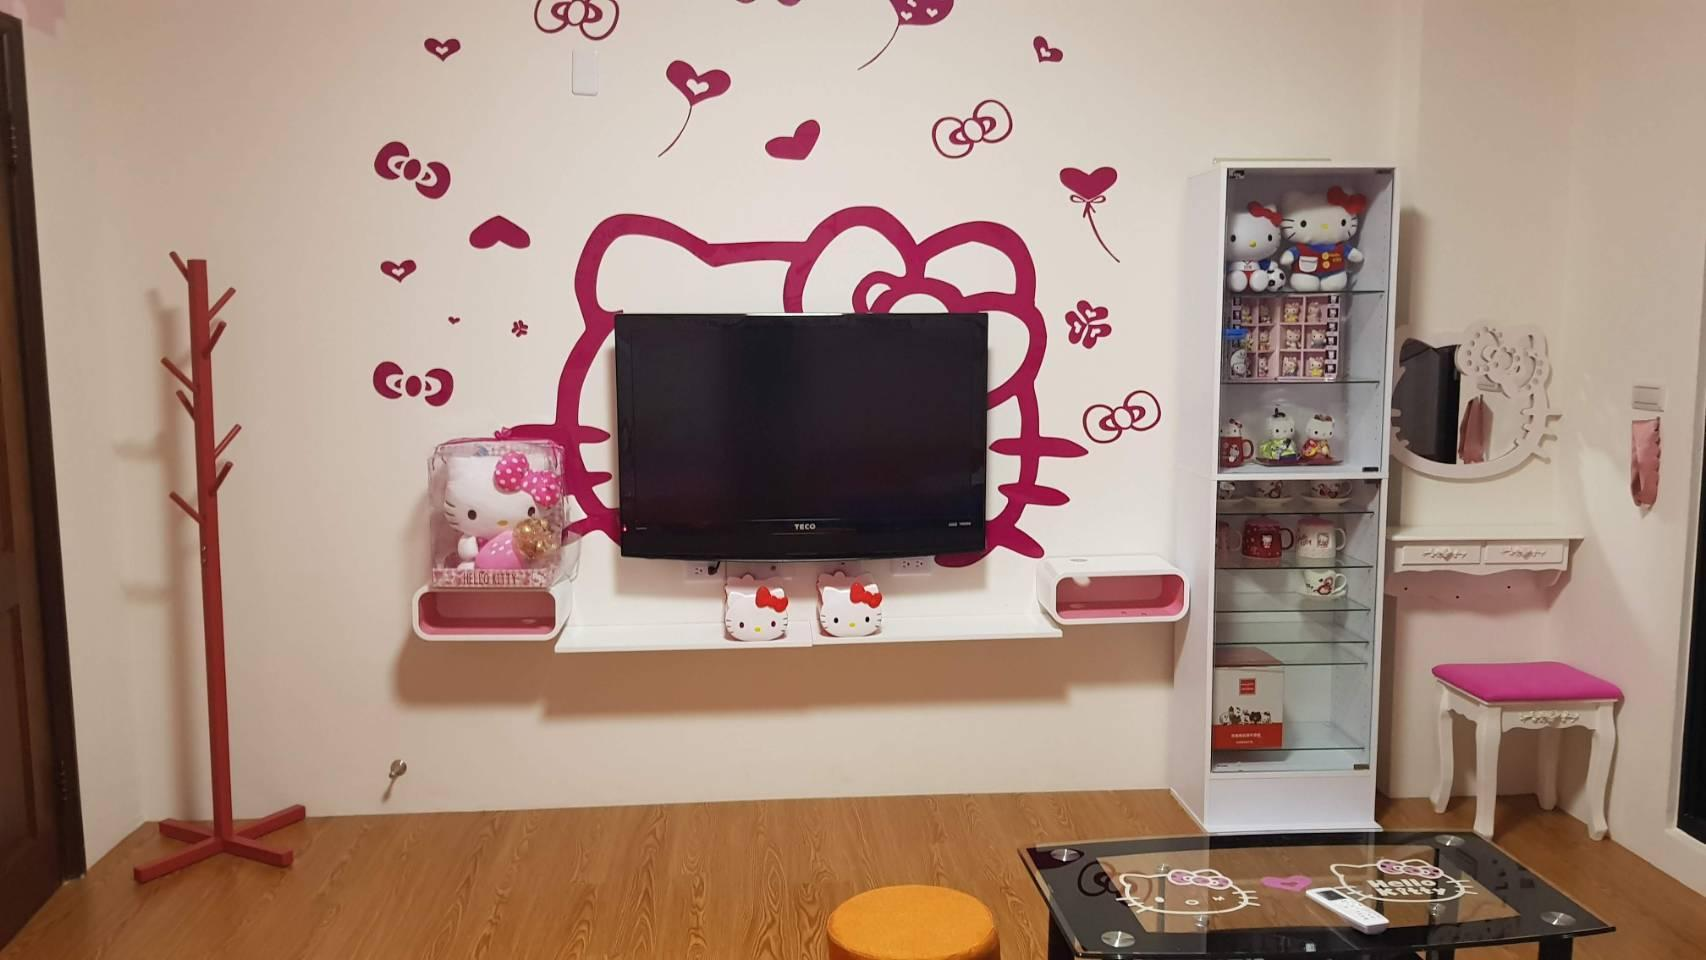 Wallpaper Kamar Hello Kitty Best Price On Hello Kitty Home In Tainan Reviews